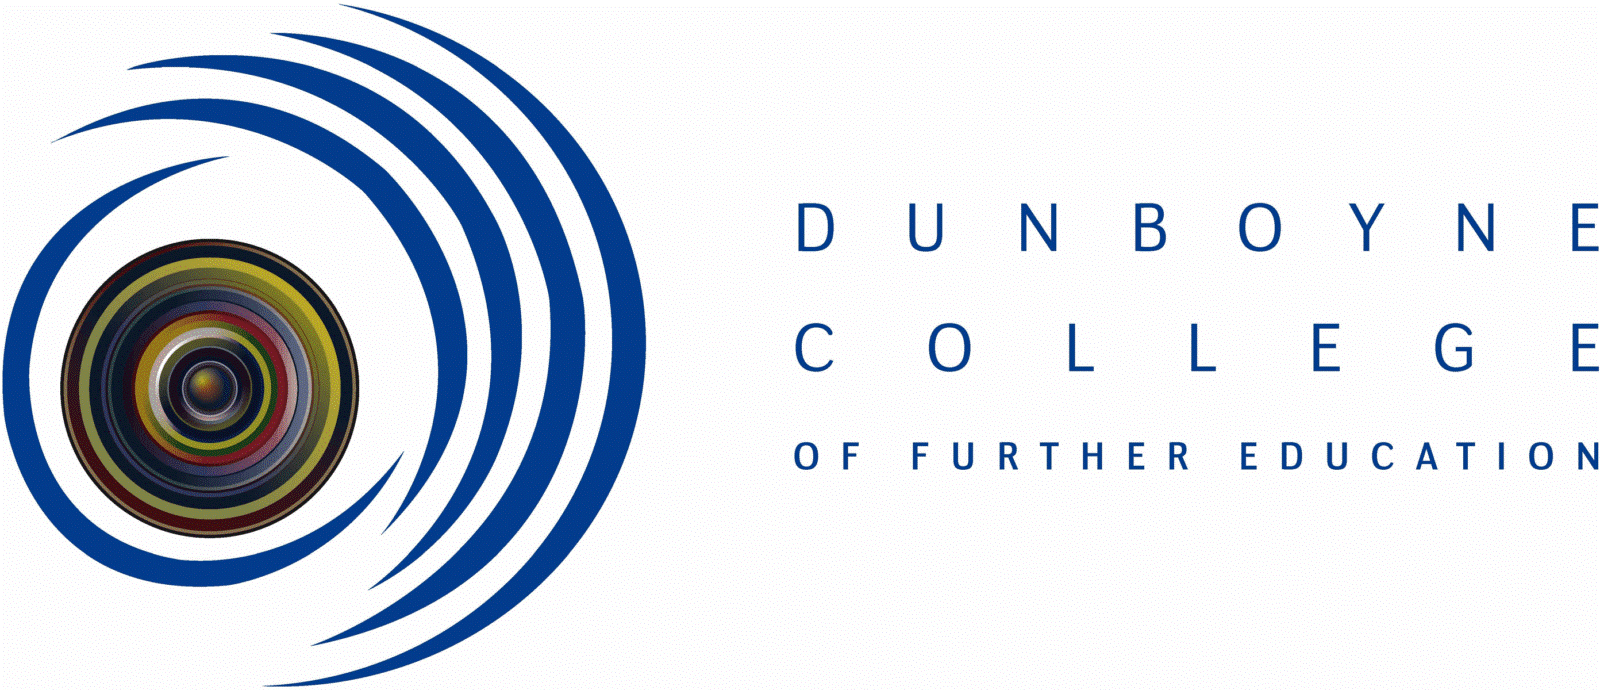 Dunboyne College of Further Education logo